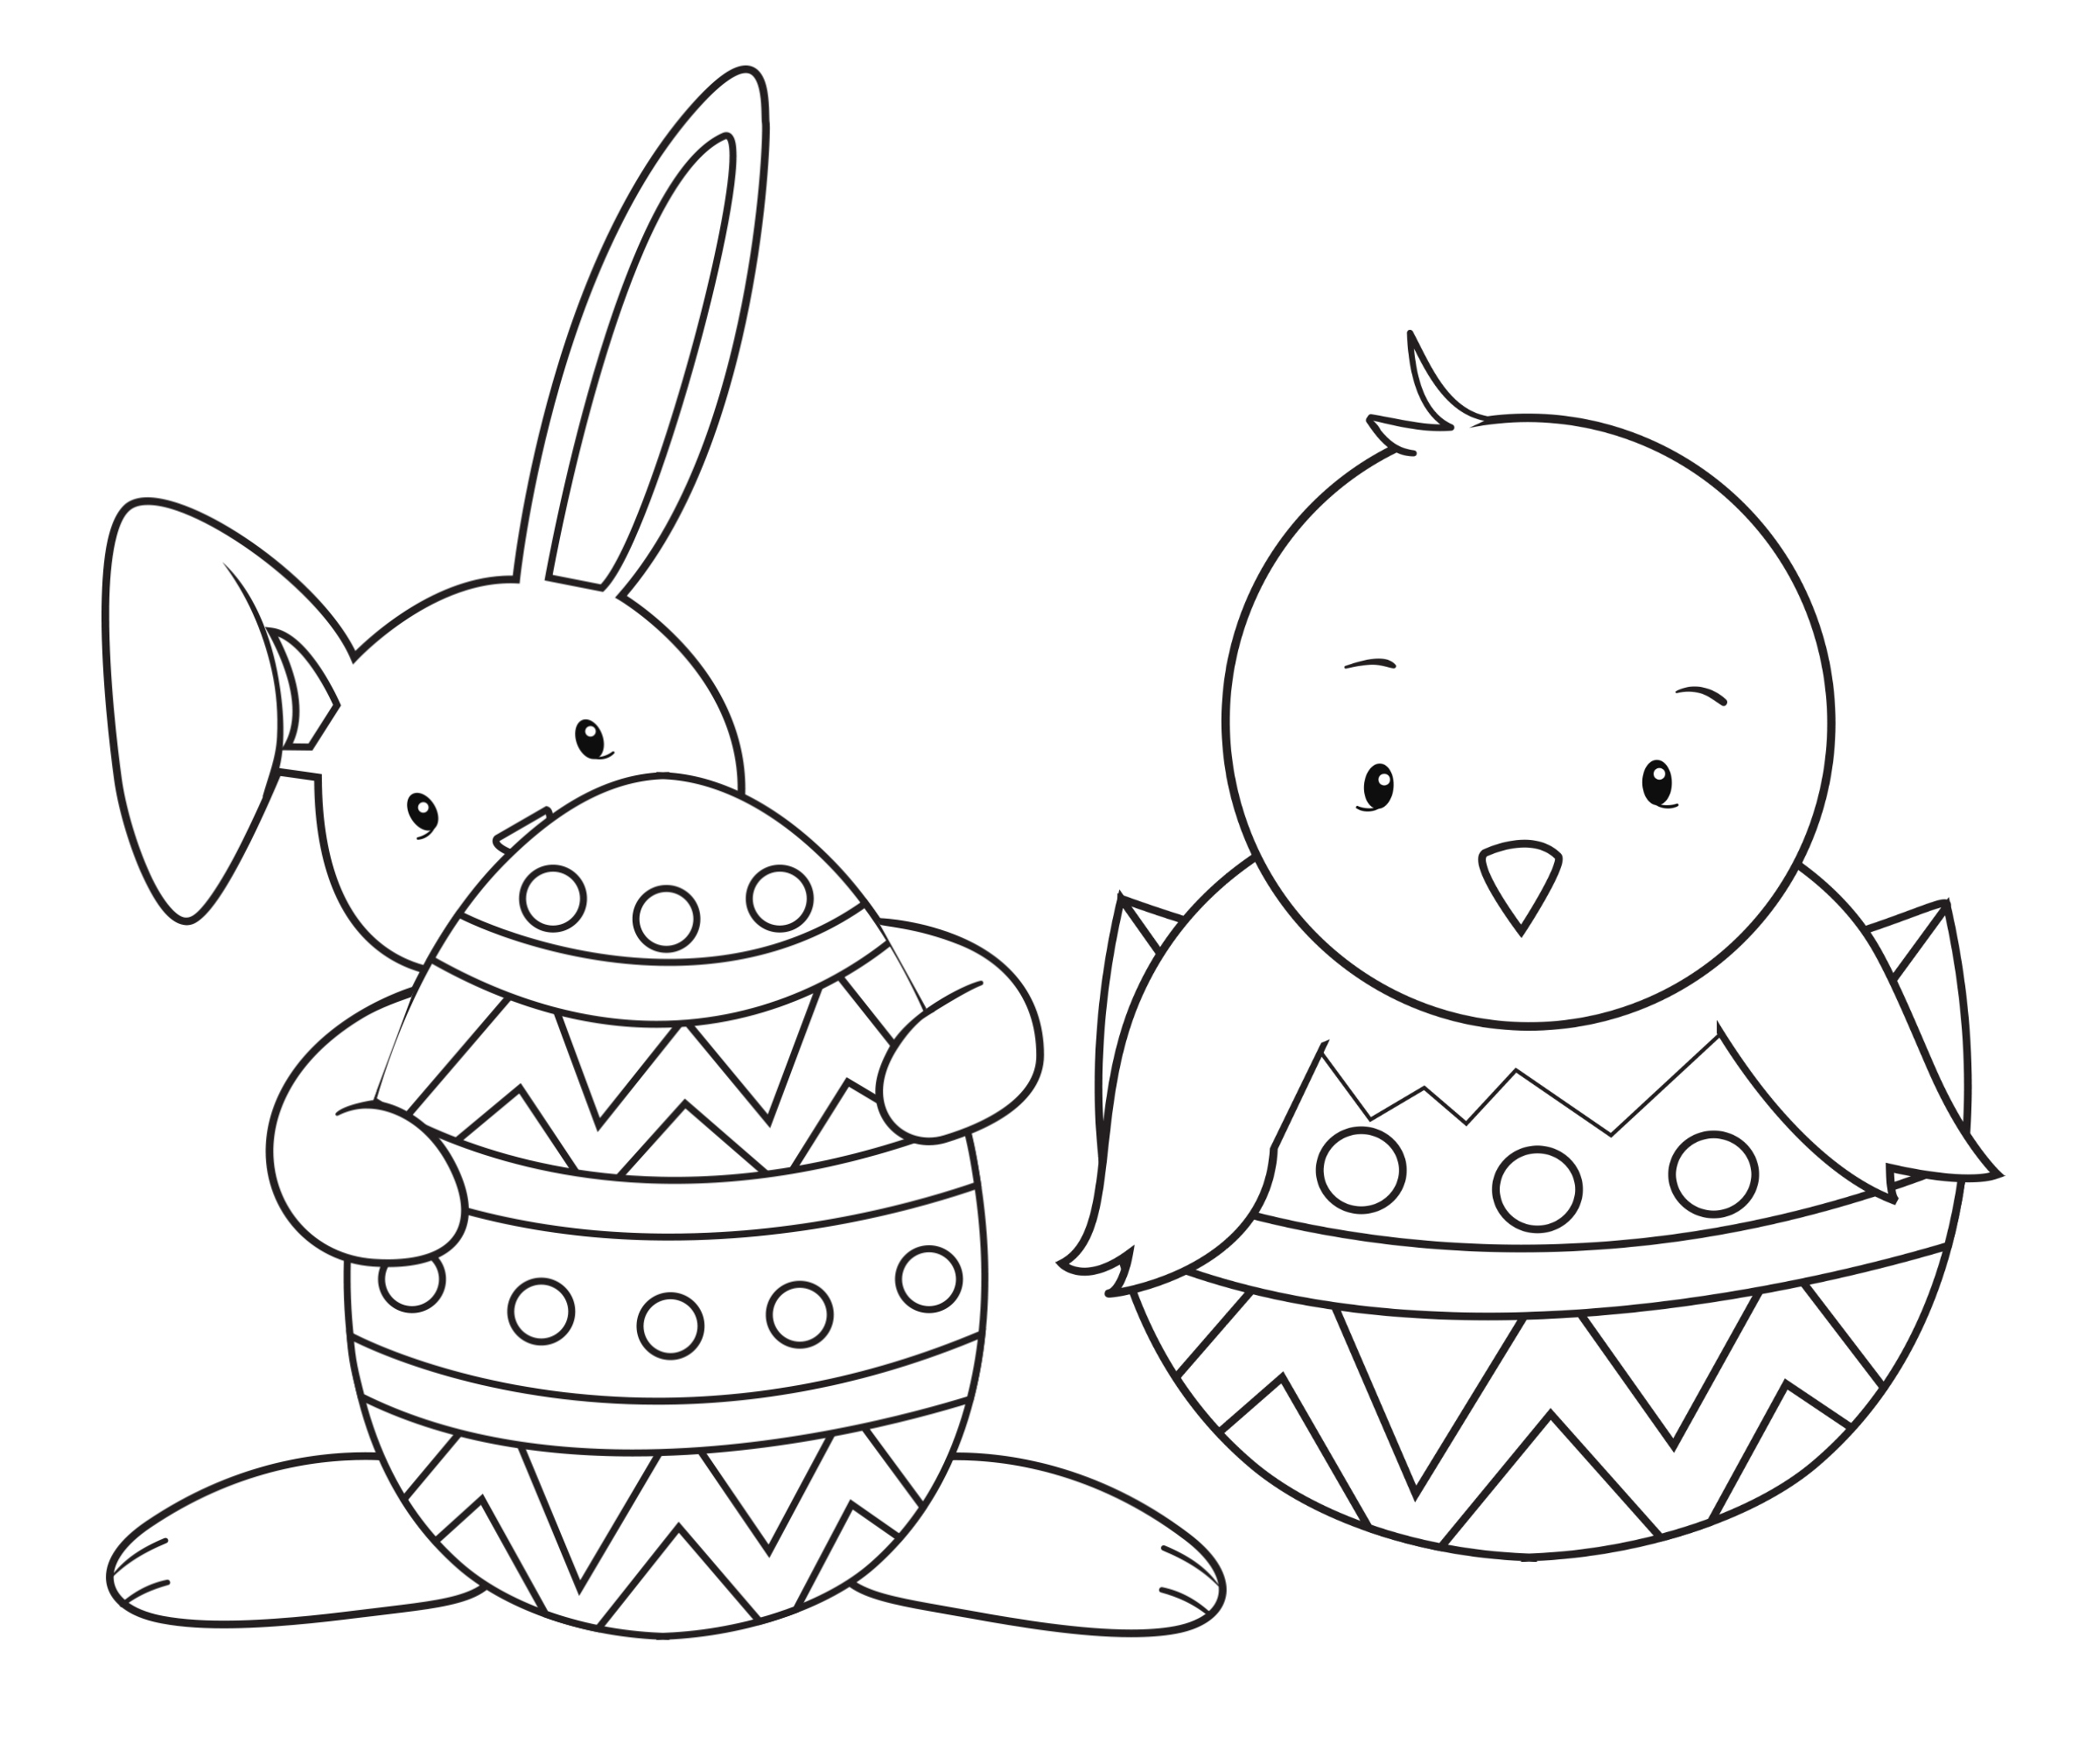 Easter Printable Coloring Pages Boys - 17.5.kaartenstemp.nl • - Free Printable Easter Coloring Pages For Toddlers